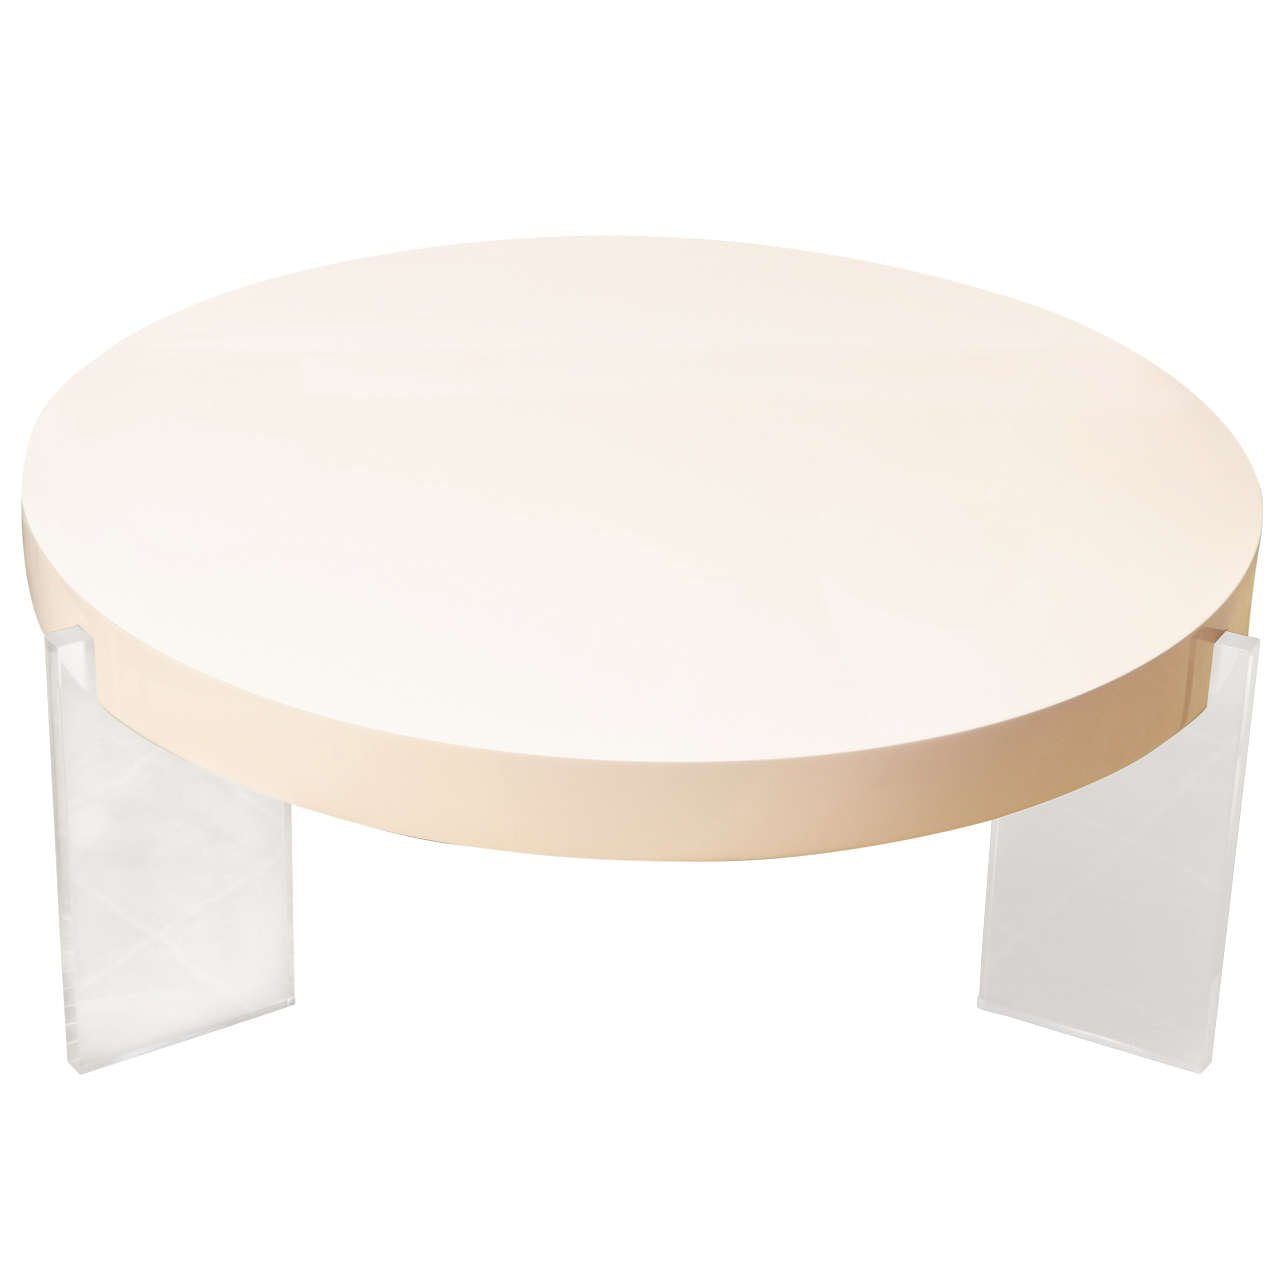 Liz O'Brien Editions Low Sam Table